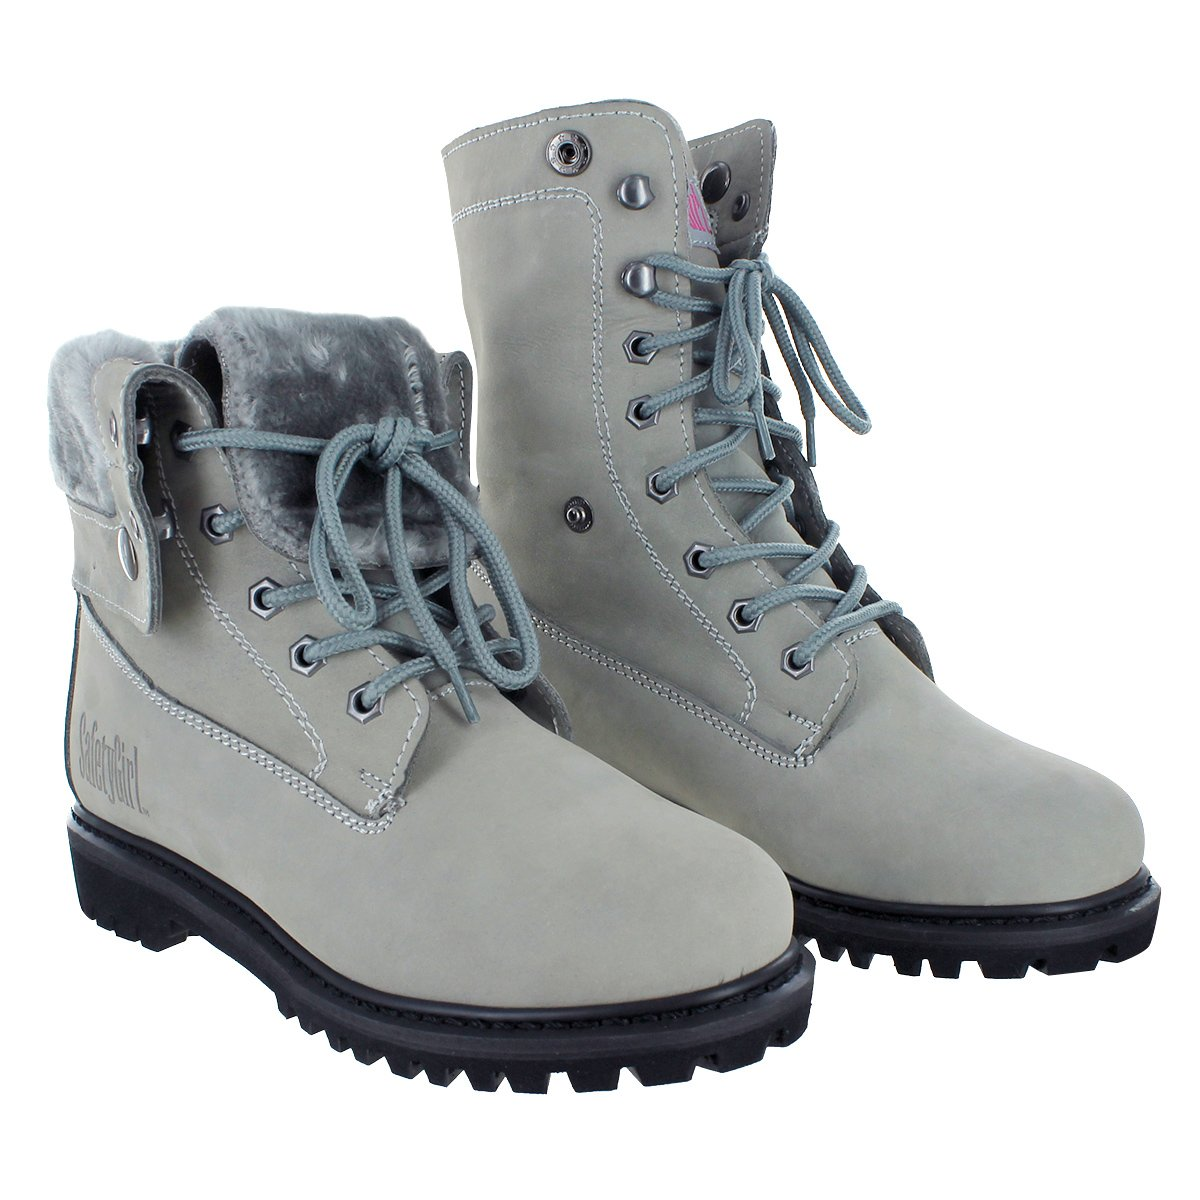 Safety Girl GS008-GRY-ST-10M Madison Fold-Down Work Boot - Gray Steel Toe 10M, English, Capacity, Volume, Leather, 10M, Gray () by Safety Girl (Image #1)